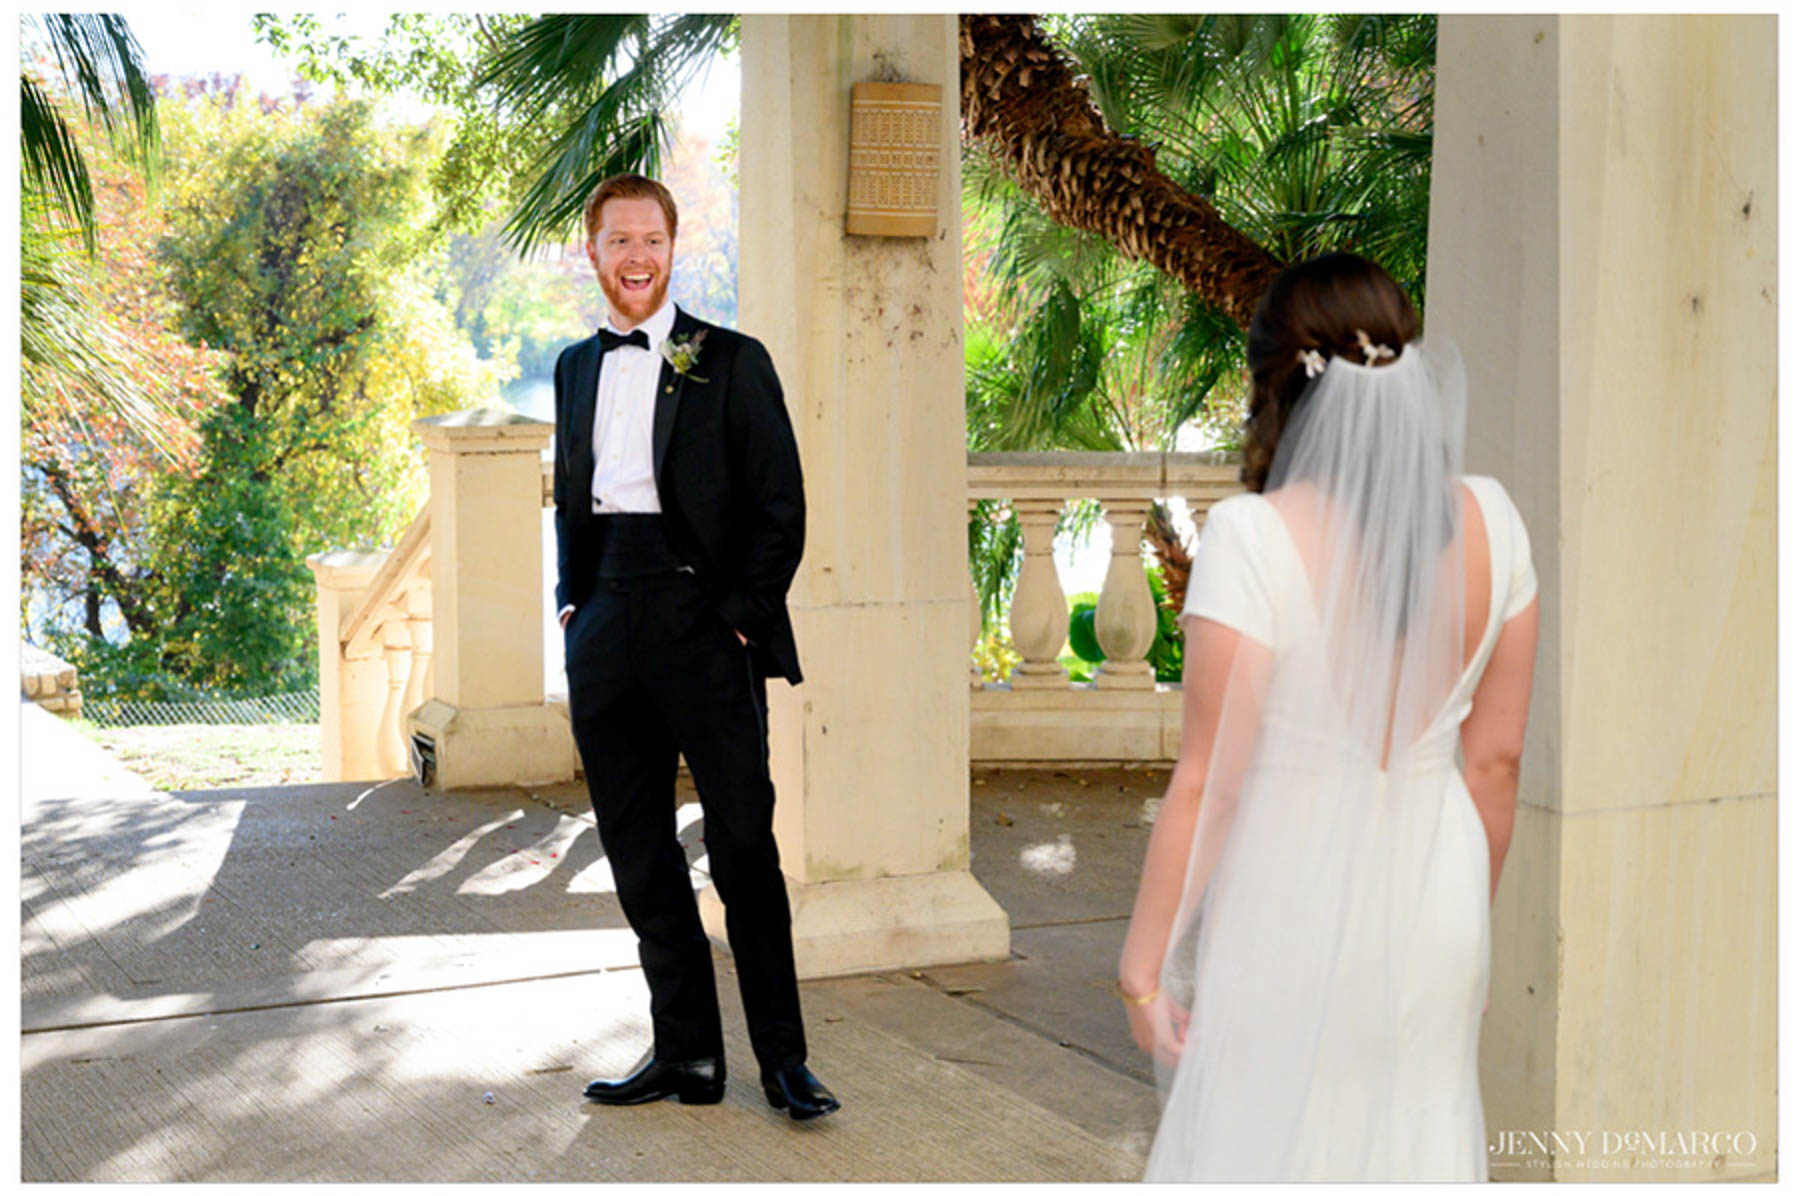 groom's first look at bride during the first look